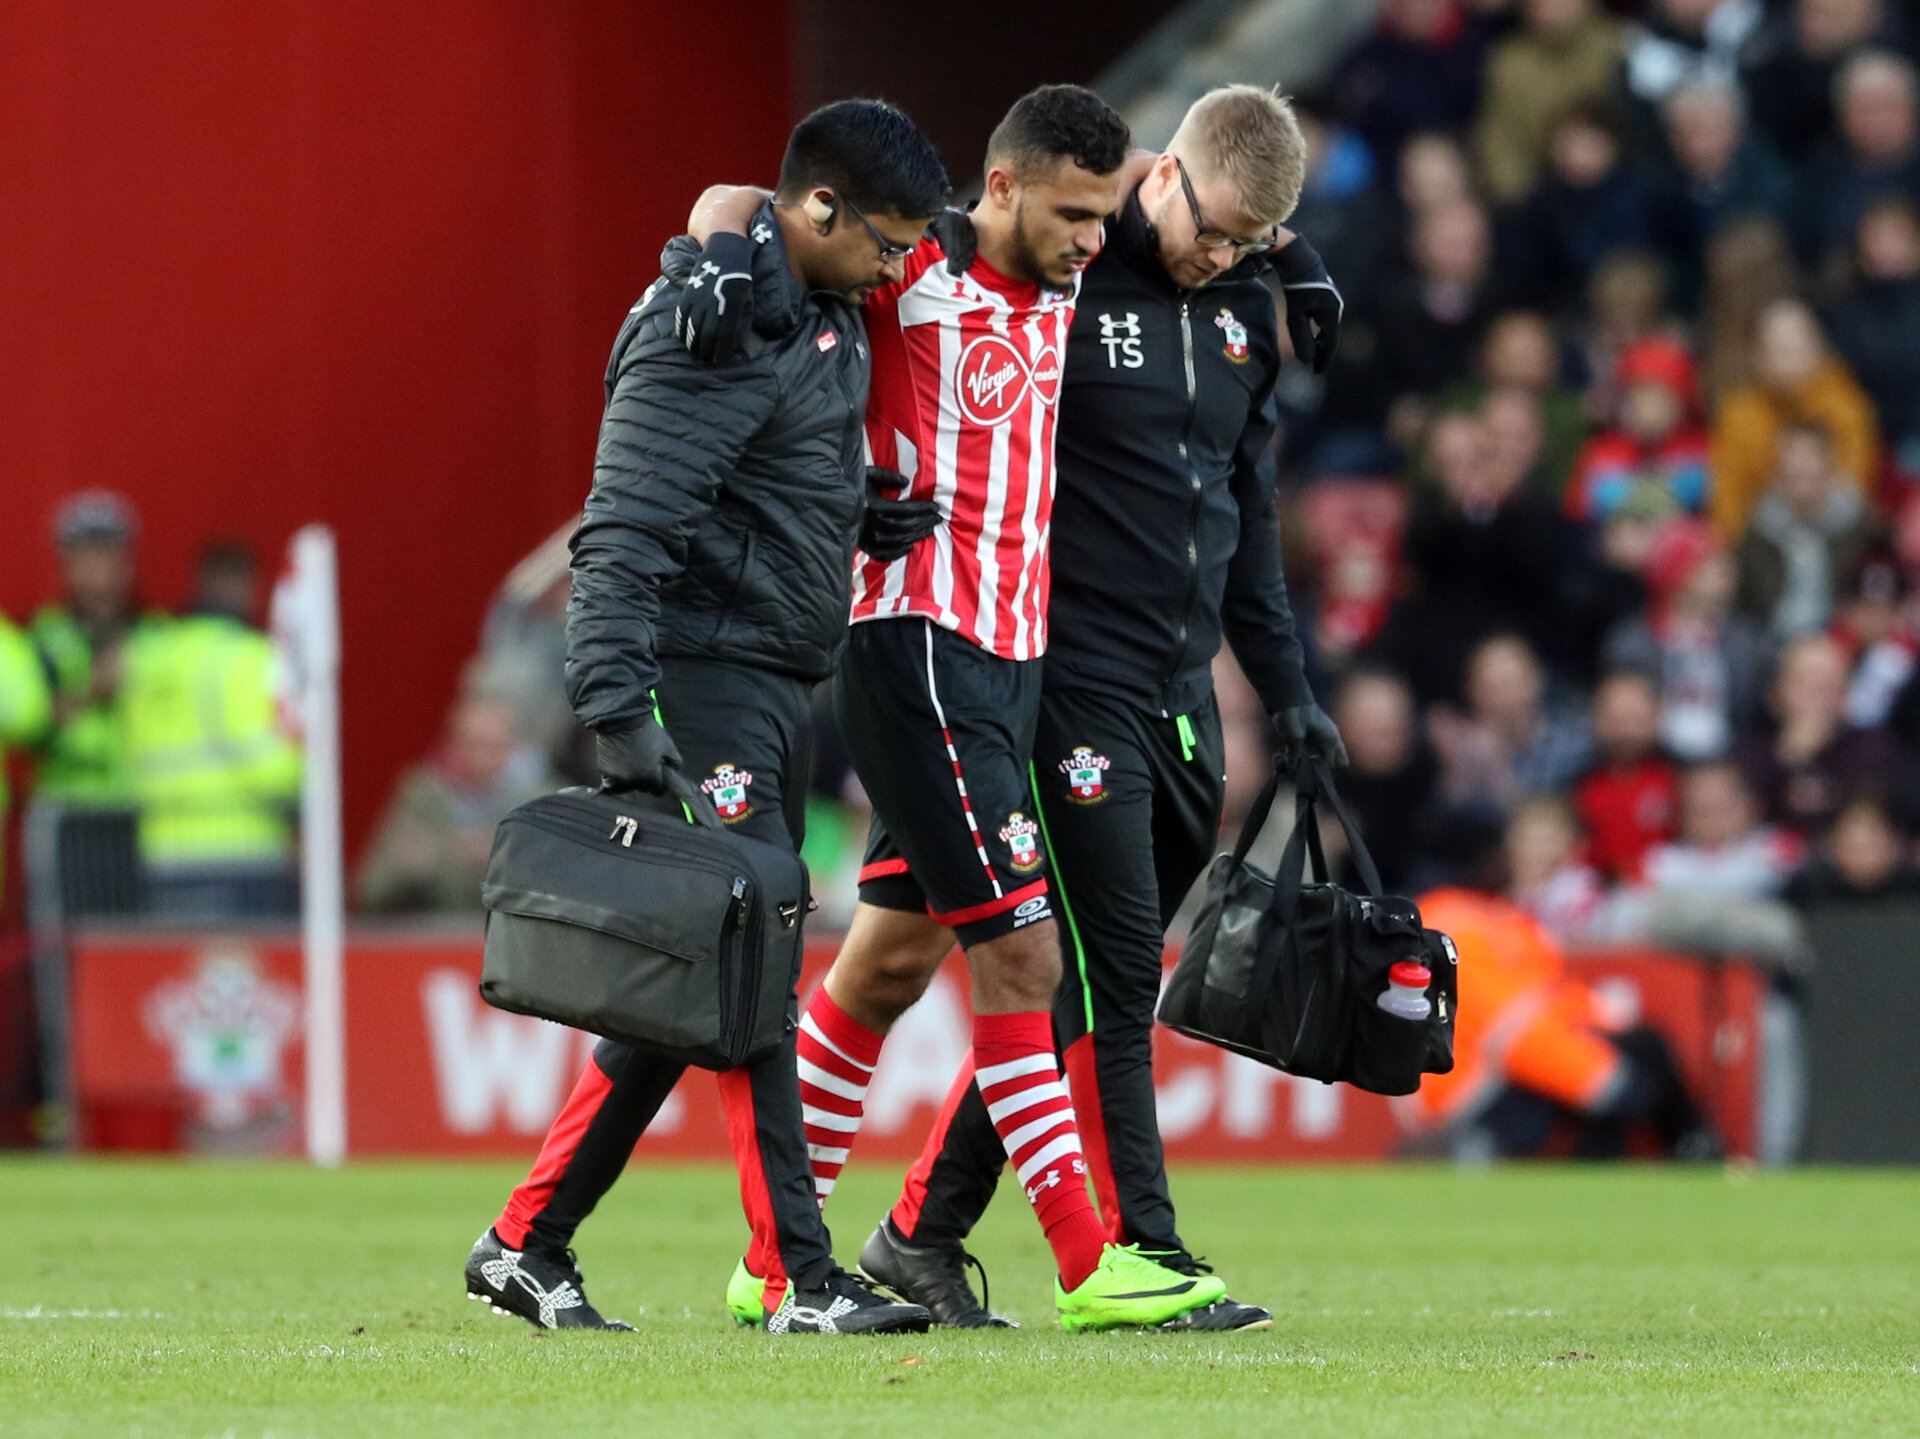 Sofiane Boufal (Southampton) goes off injured during the Premier League match between Southampton and West Ham United at St Mary's Stadium, Southampton, England on 4 February 2017.